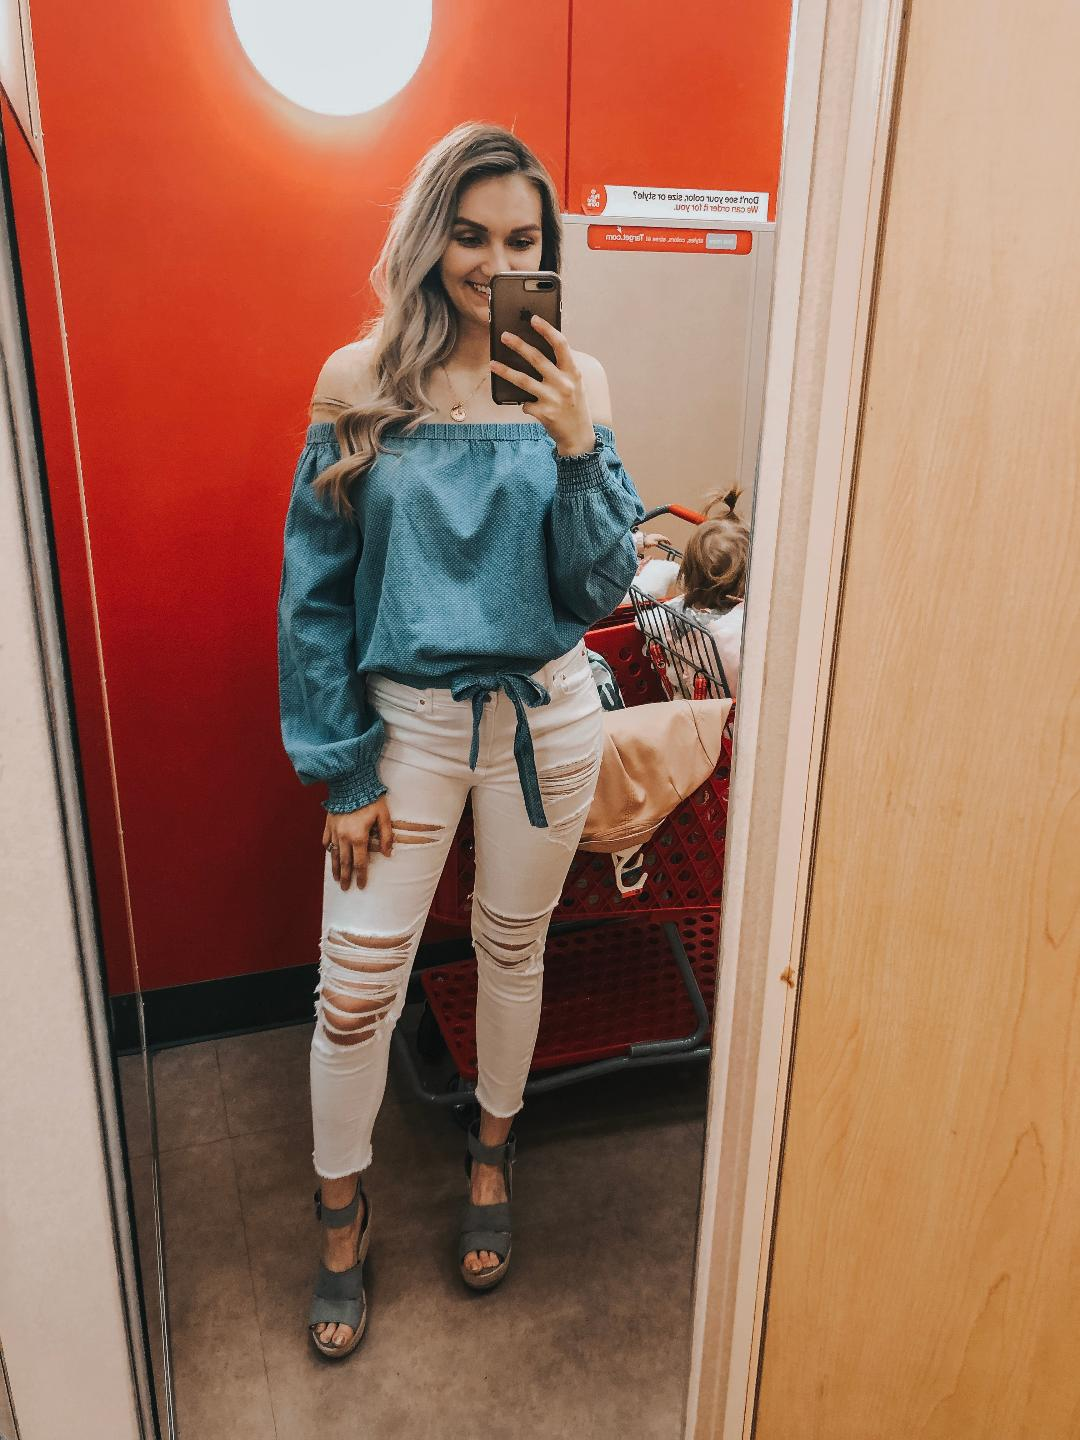 Chambray Top  (TTS-slightly big. Wearing Medium)   White Distressed Jeans  (Hard to say on sizing since I'm pregnant. I recommend trying on in store to find right fit)   Grey Wedges  (Run large- I recommend sizing down .5-1 whole size)   Necklace  (an anniversary present from my husband. I seriously love it so much.)